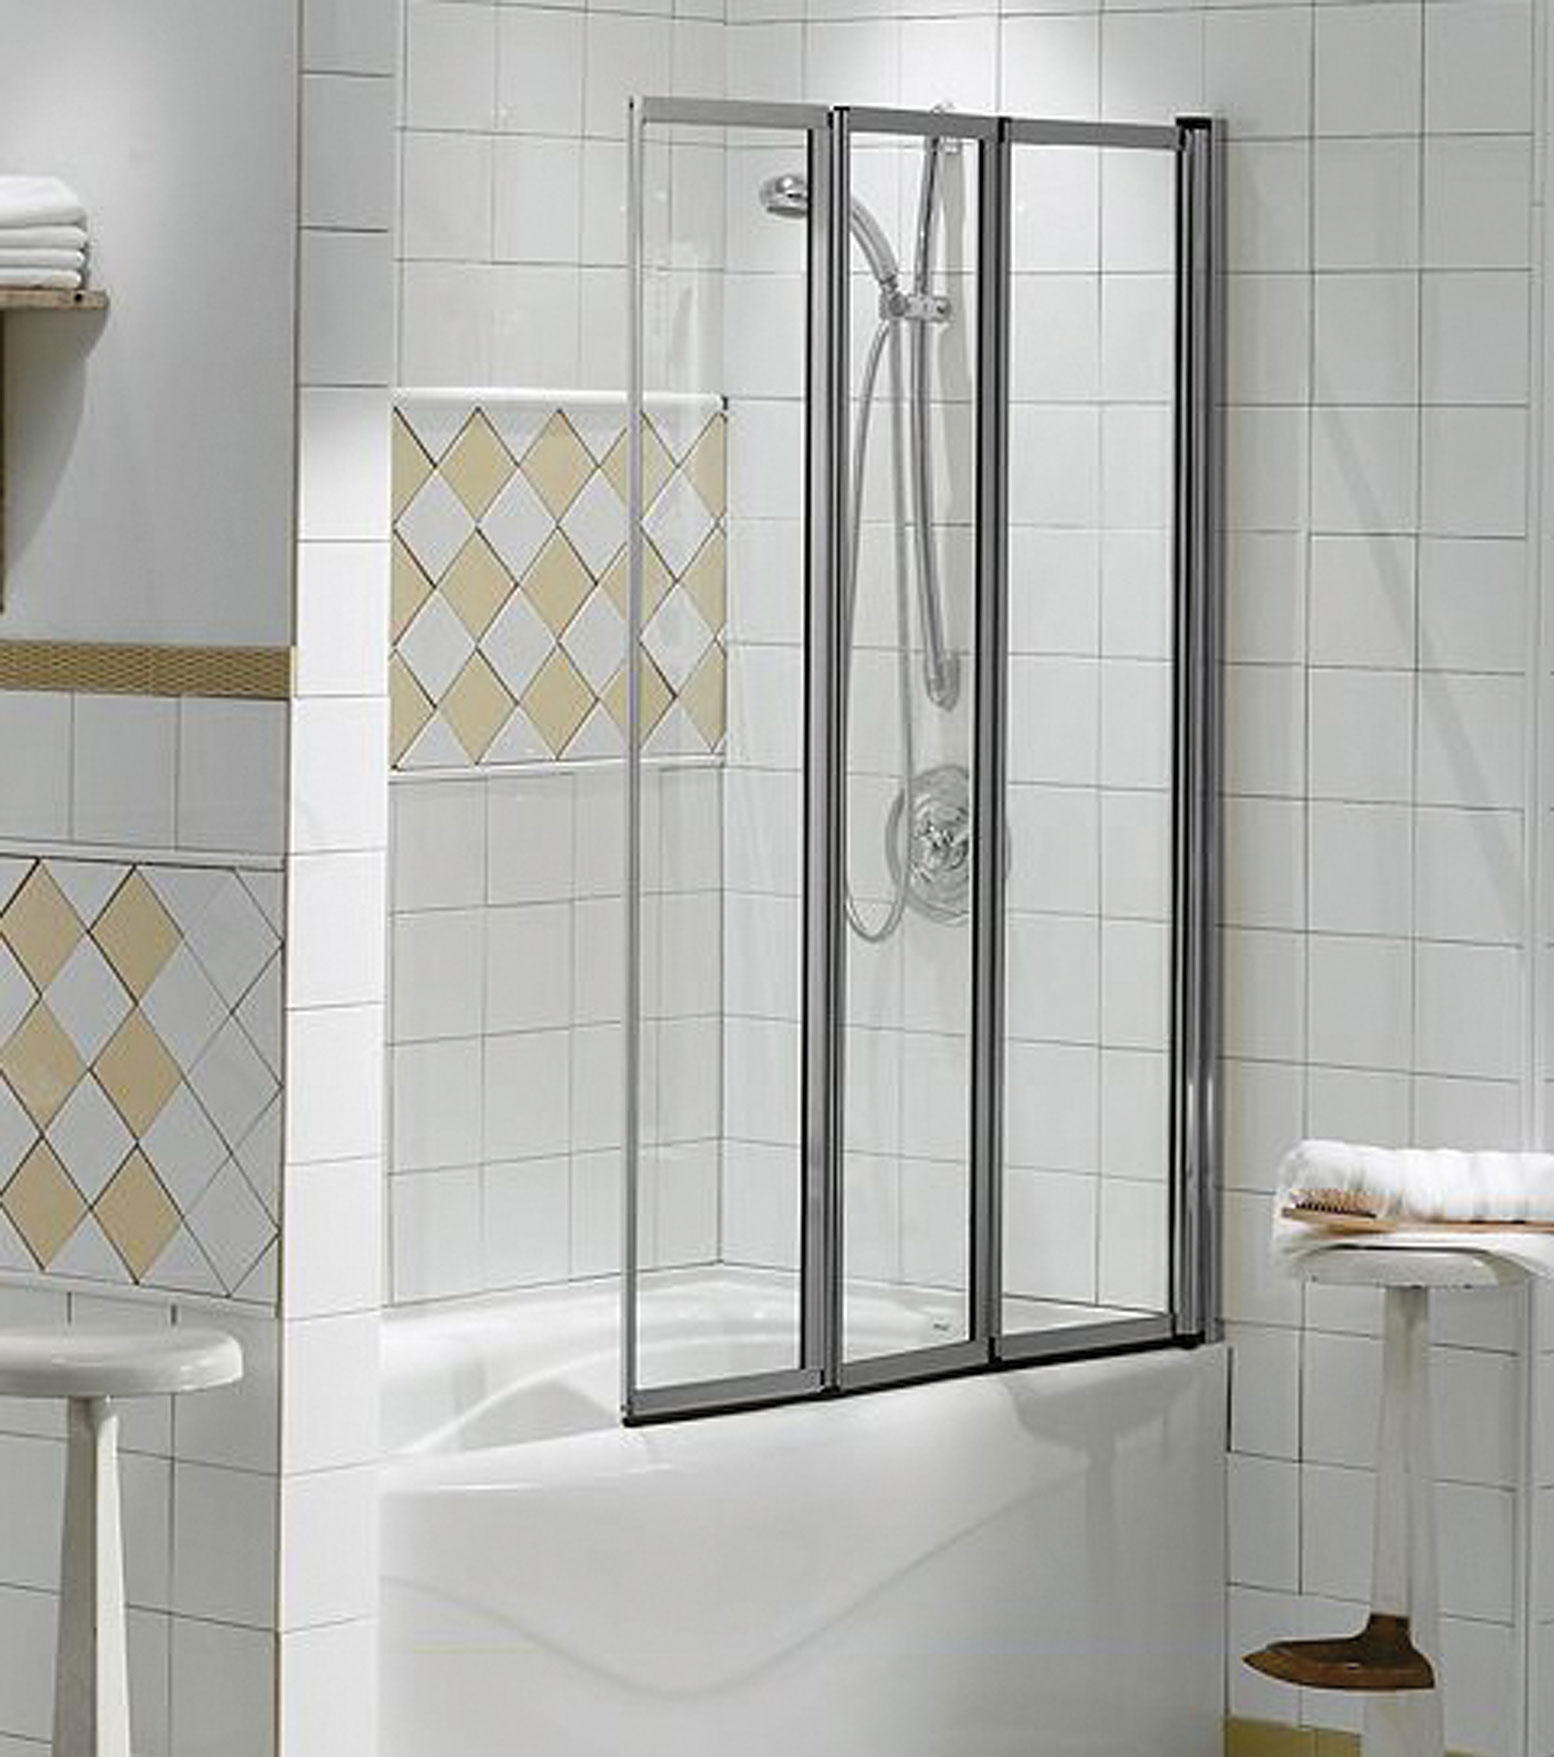 Top 20 Accordion Shower Door Ideas 2018 Interior Exterior Ideas